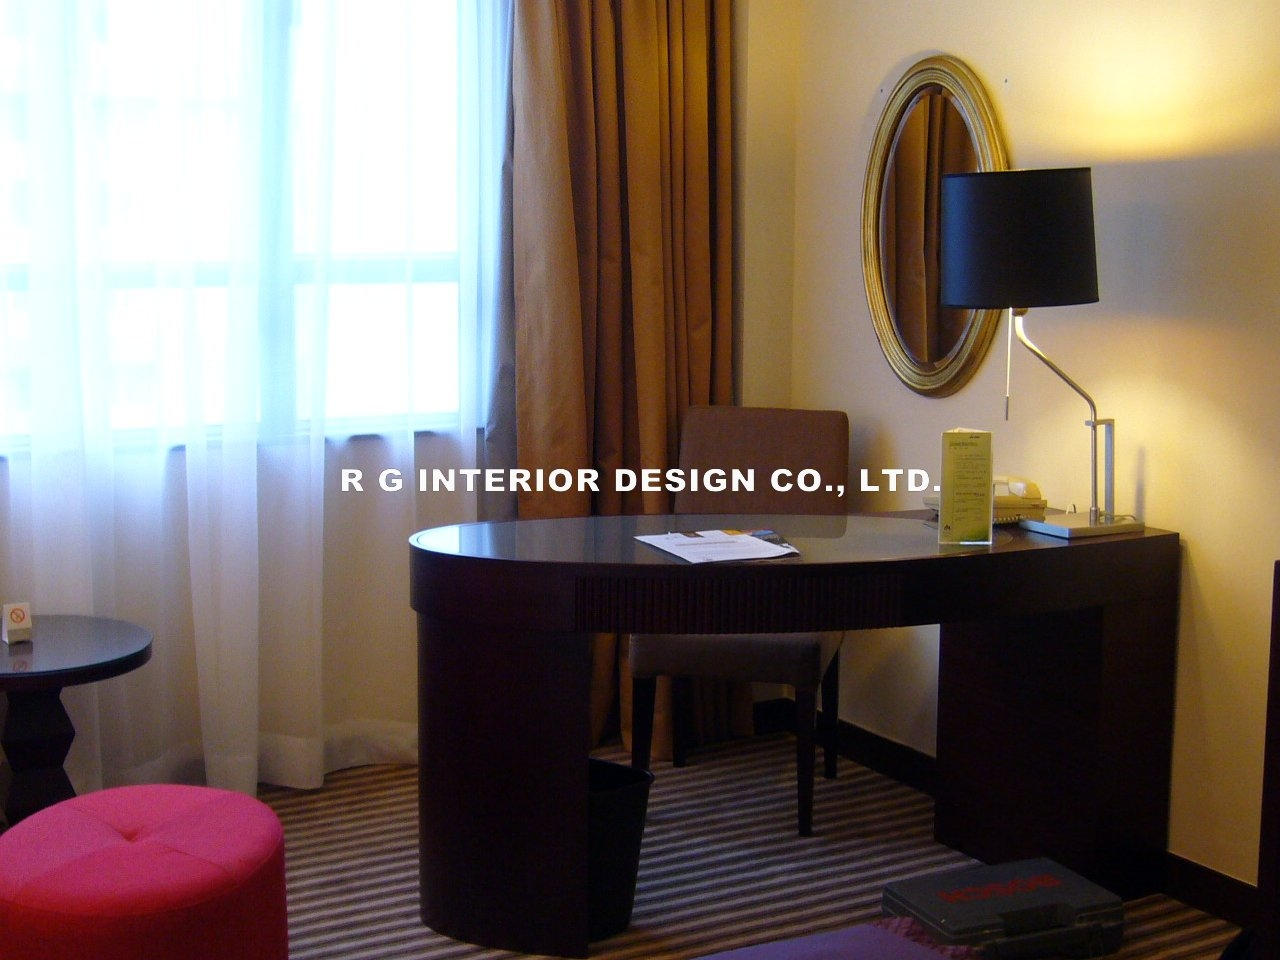 Metro park hotel show suite rg interior design co ltd for A t design decoration co ltd